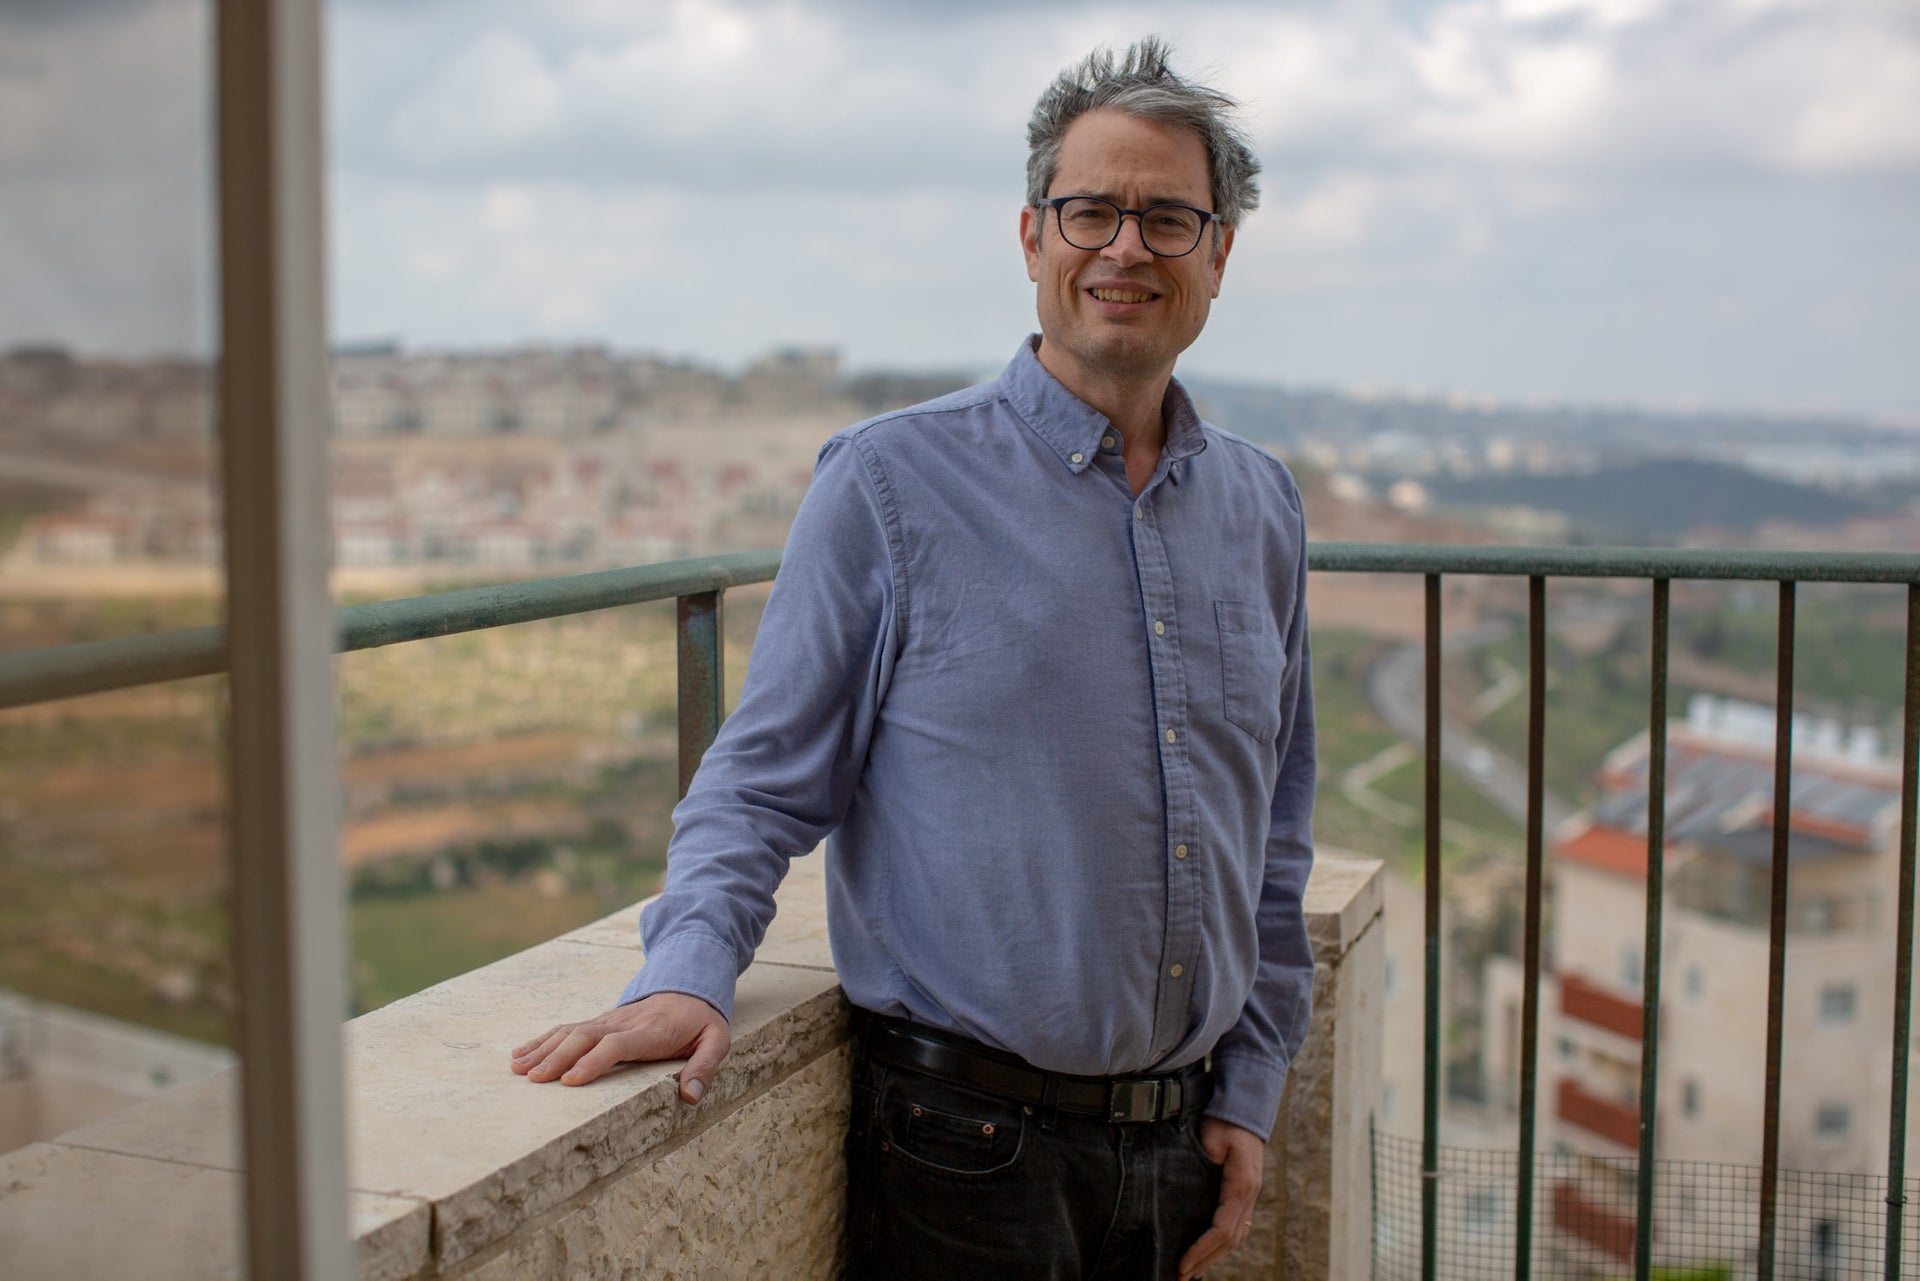 David Curwin, originally from Boston, won't be voting Likud but backs the PM: Netanyahu has 'done a phenomenal job, yet most Israelis take it for granted'